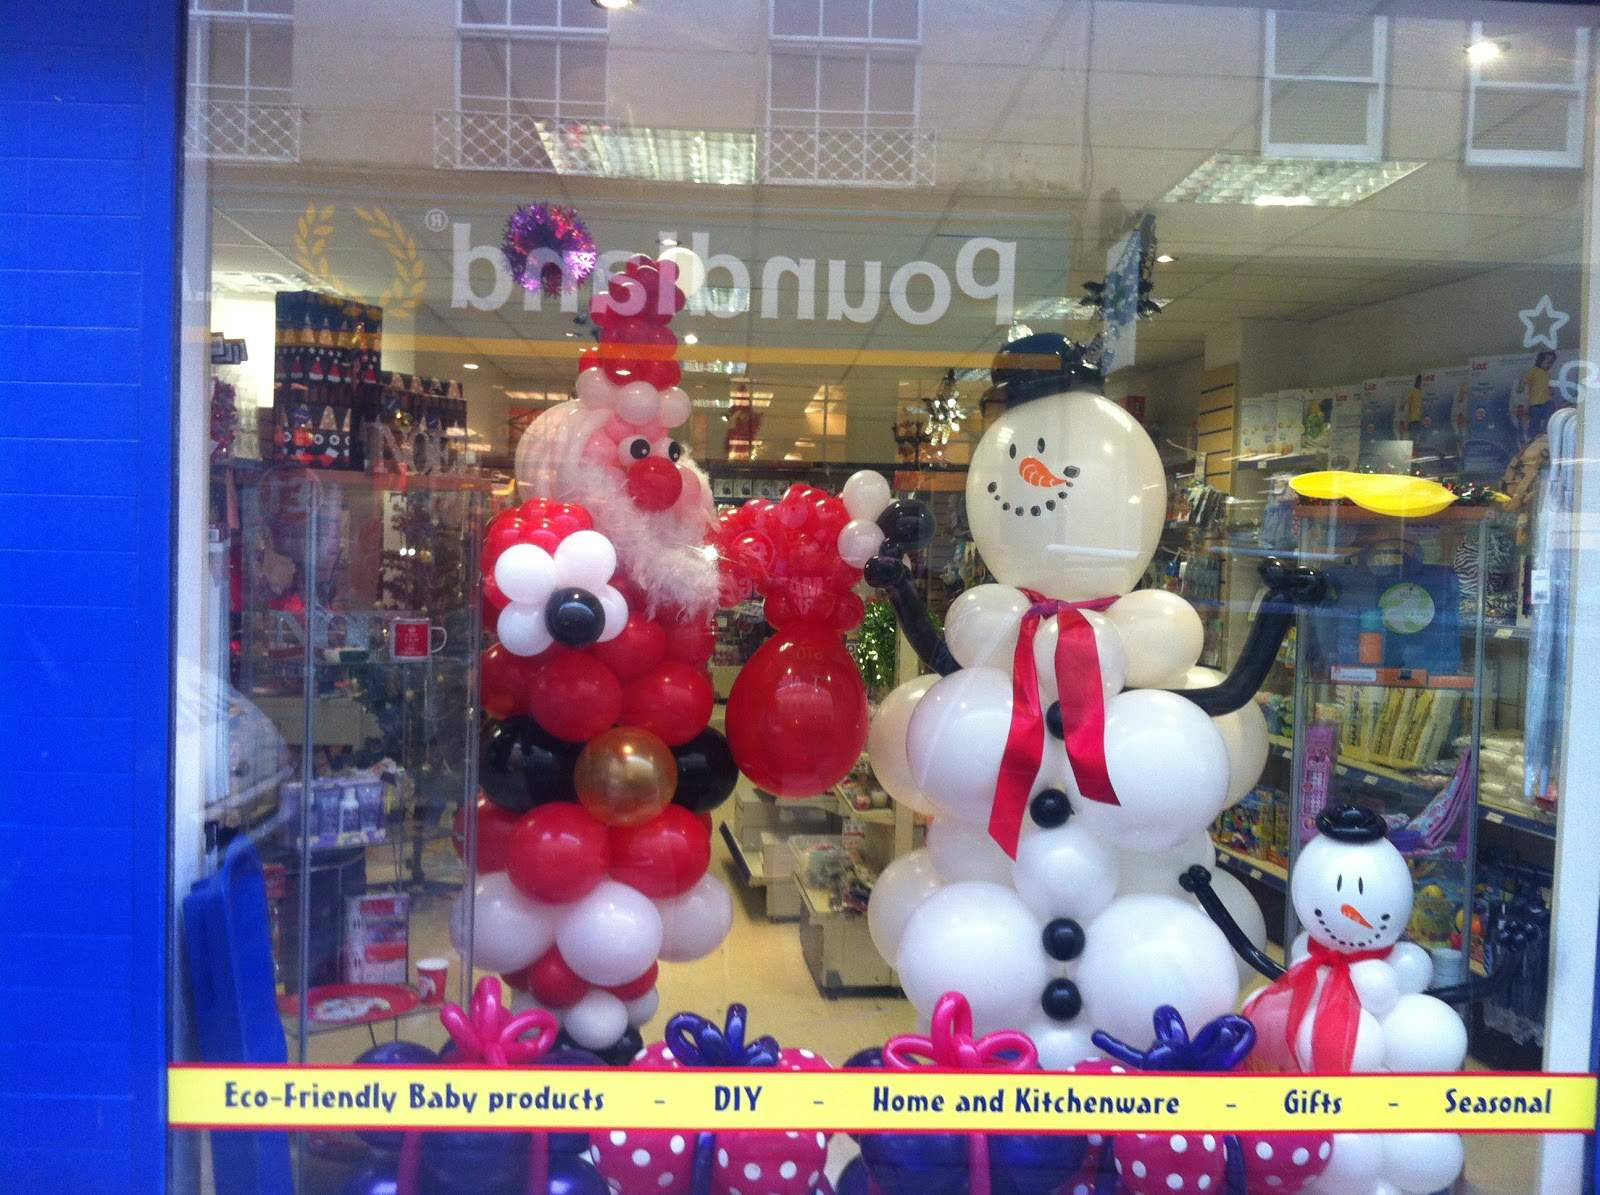 Events Bristol Christmas Balloon Decorations Your Shop Window